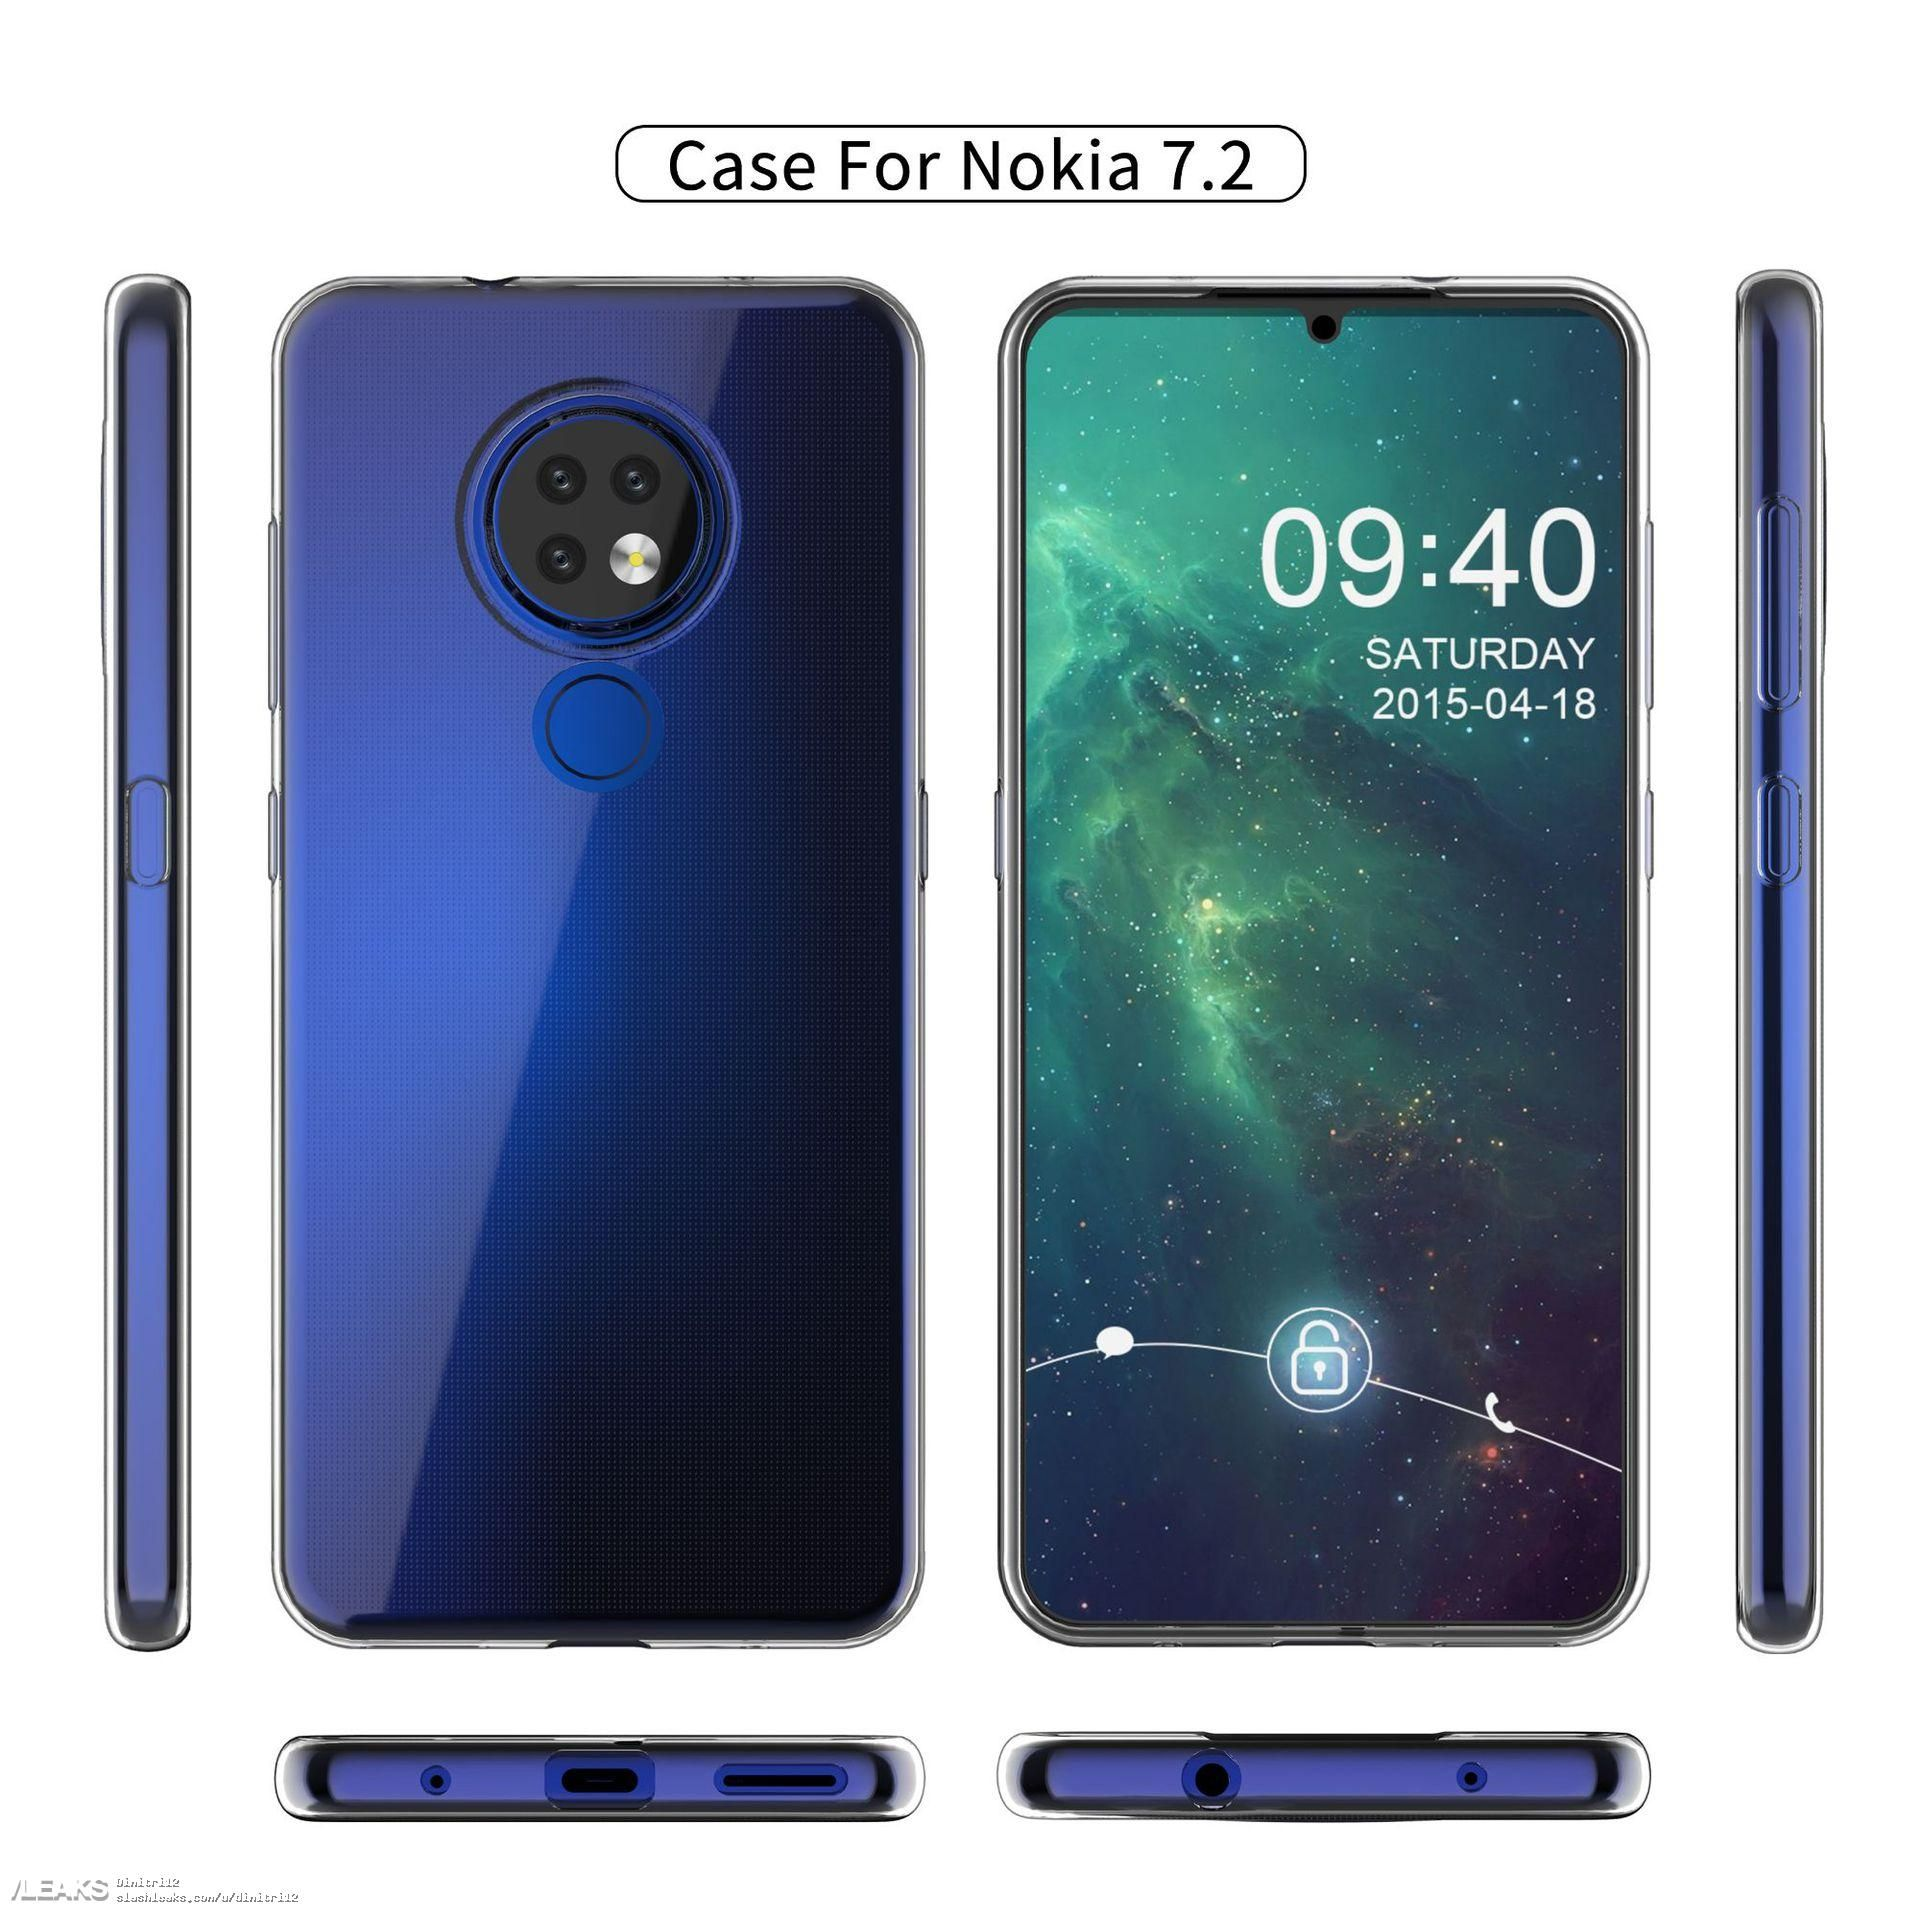 new product e33c0 24456 Nokia 6.2 and Nokia 7.2 cases said to ship in 15 days, launch ...